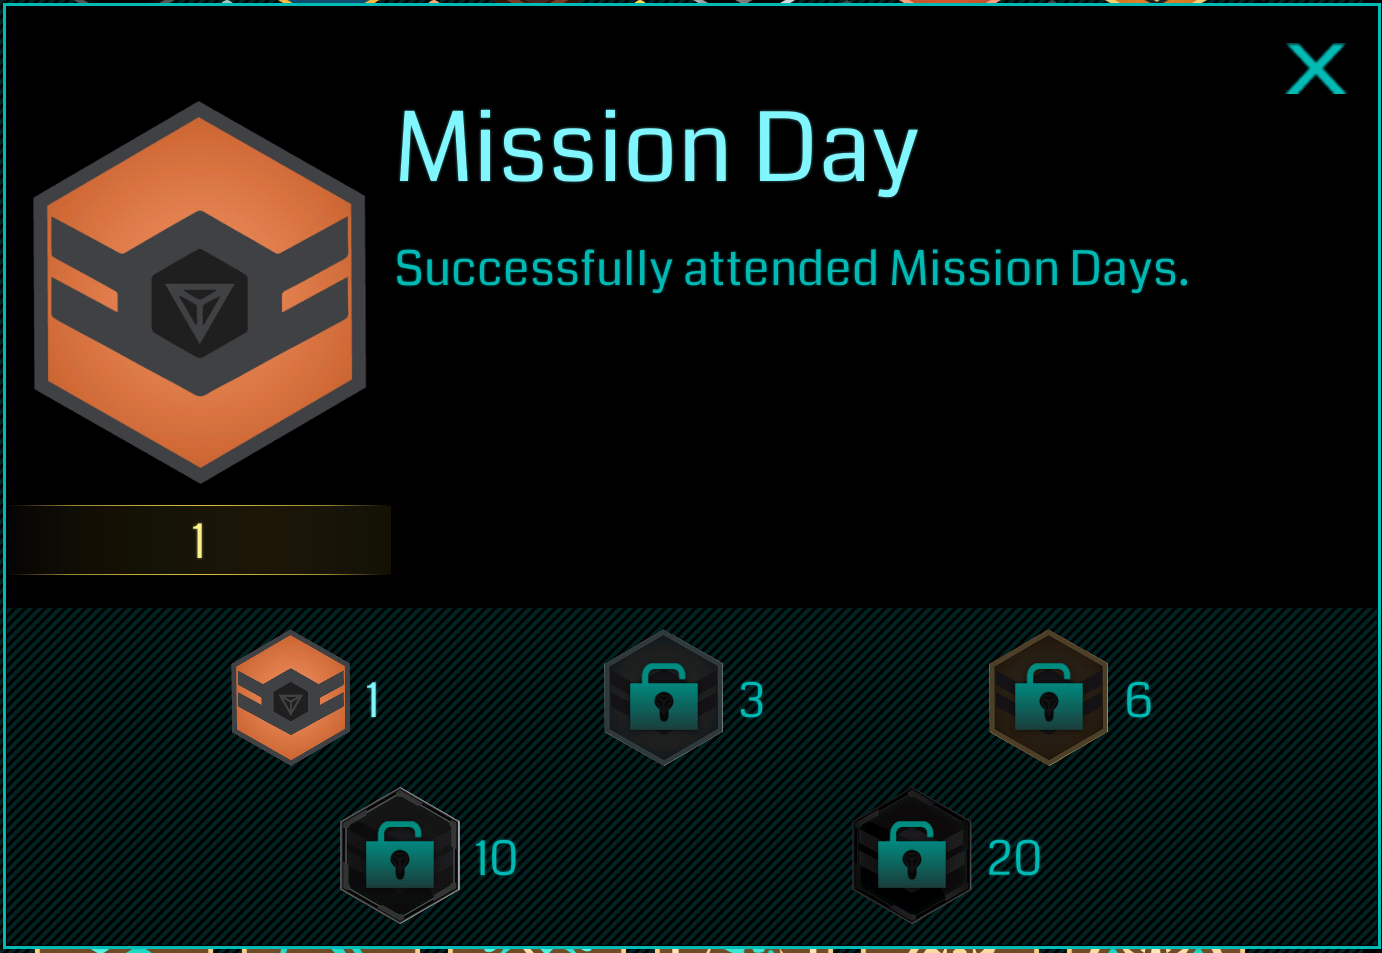 missionday_tiers.png